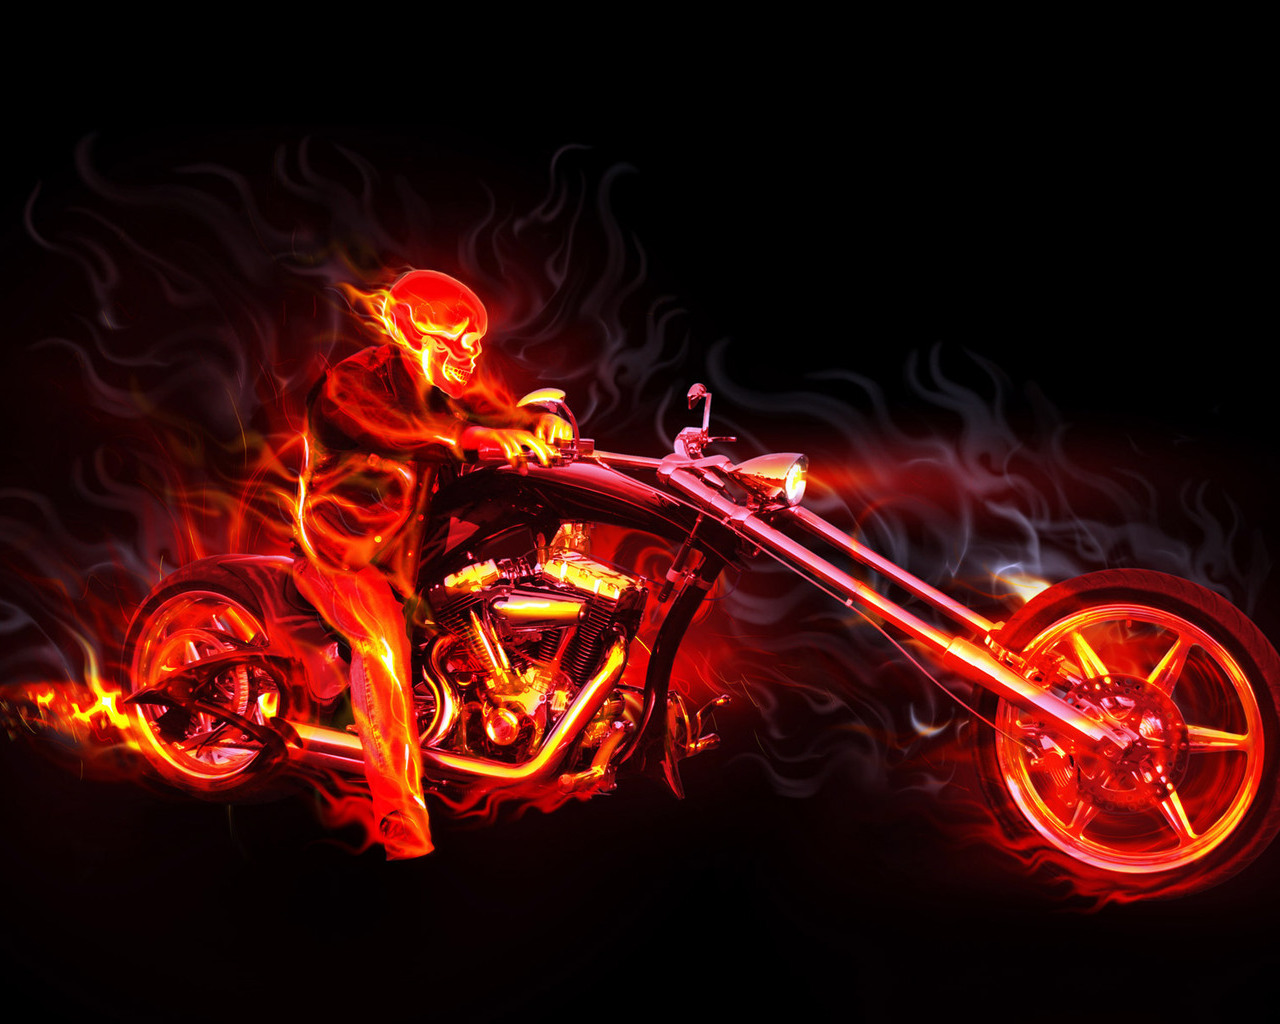 wallpaper Ghost Rider Wallpaper Download hd wallpaper 1280x1024